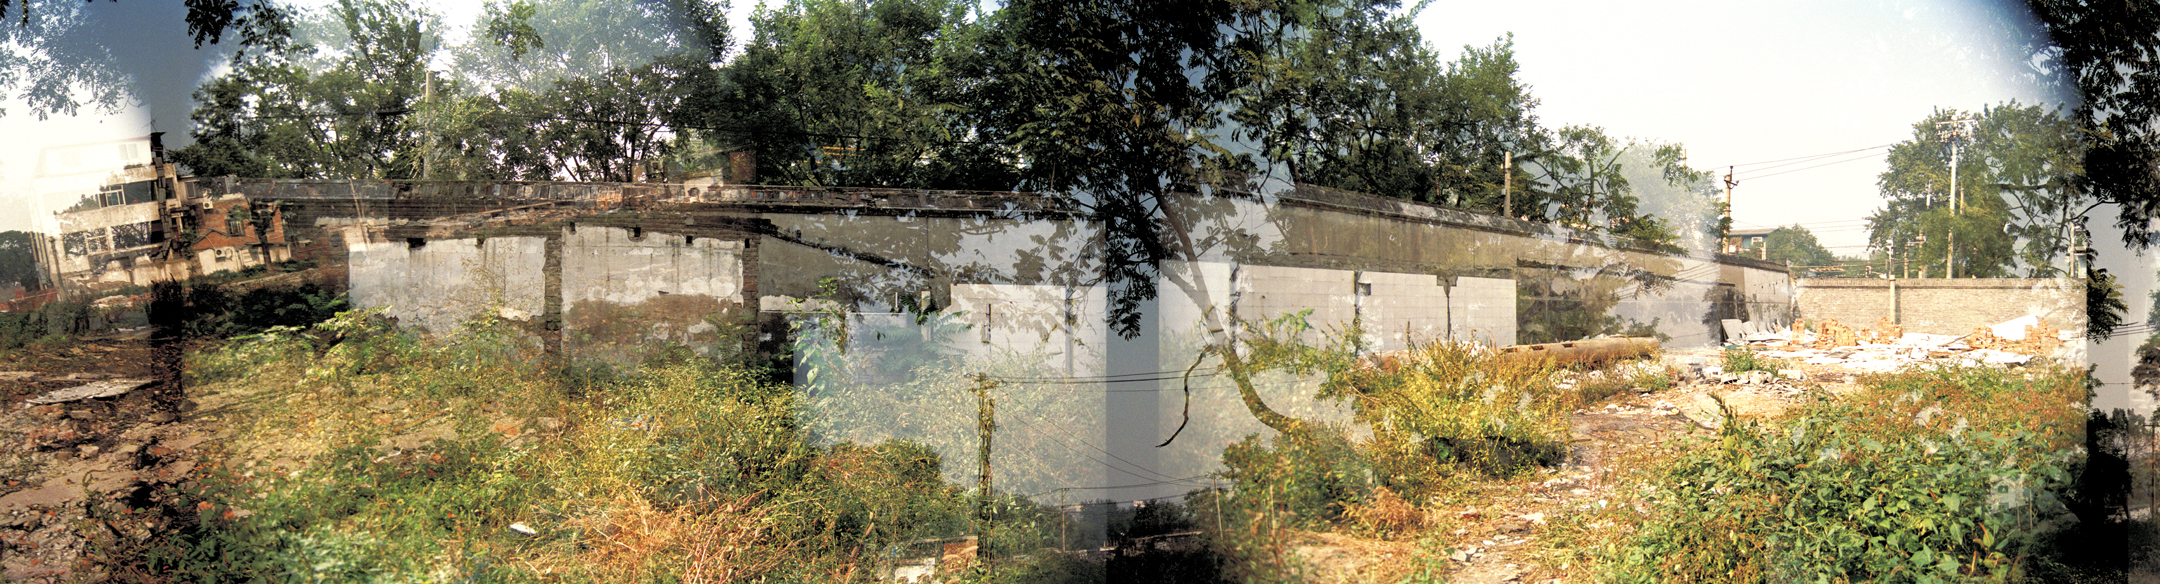 Images of trees, a cement wall, and windows have been stitched together